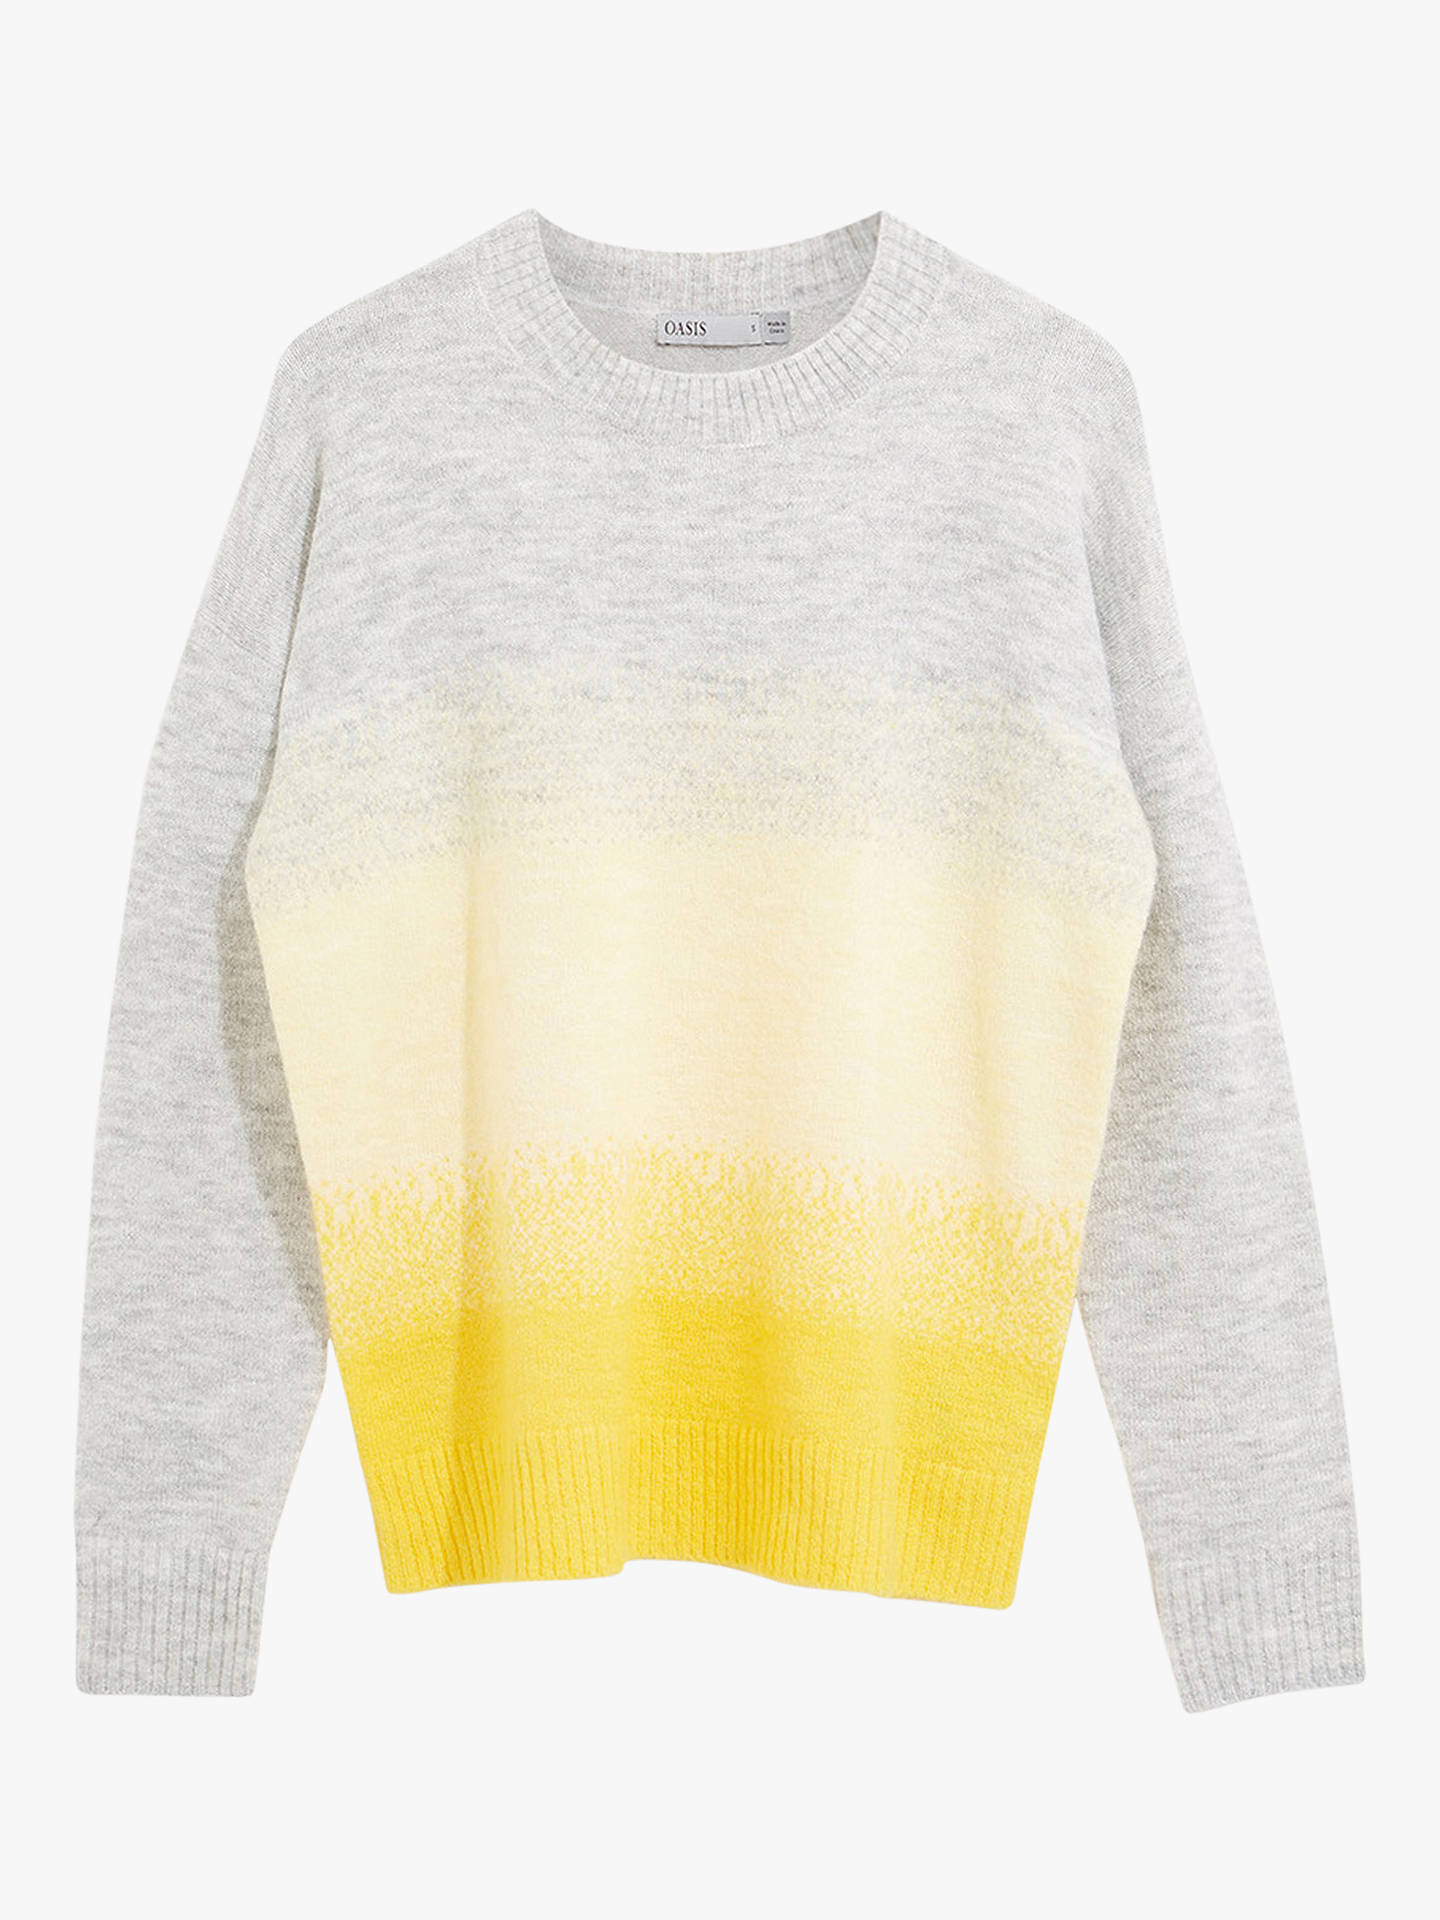 Oasis Ombre Fluffy Knit Jumper, MultiYellow at John Lewis